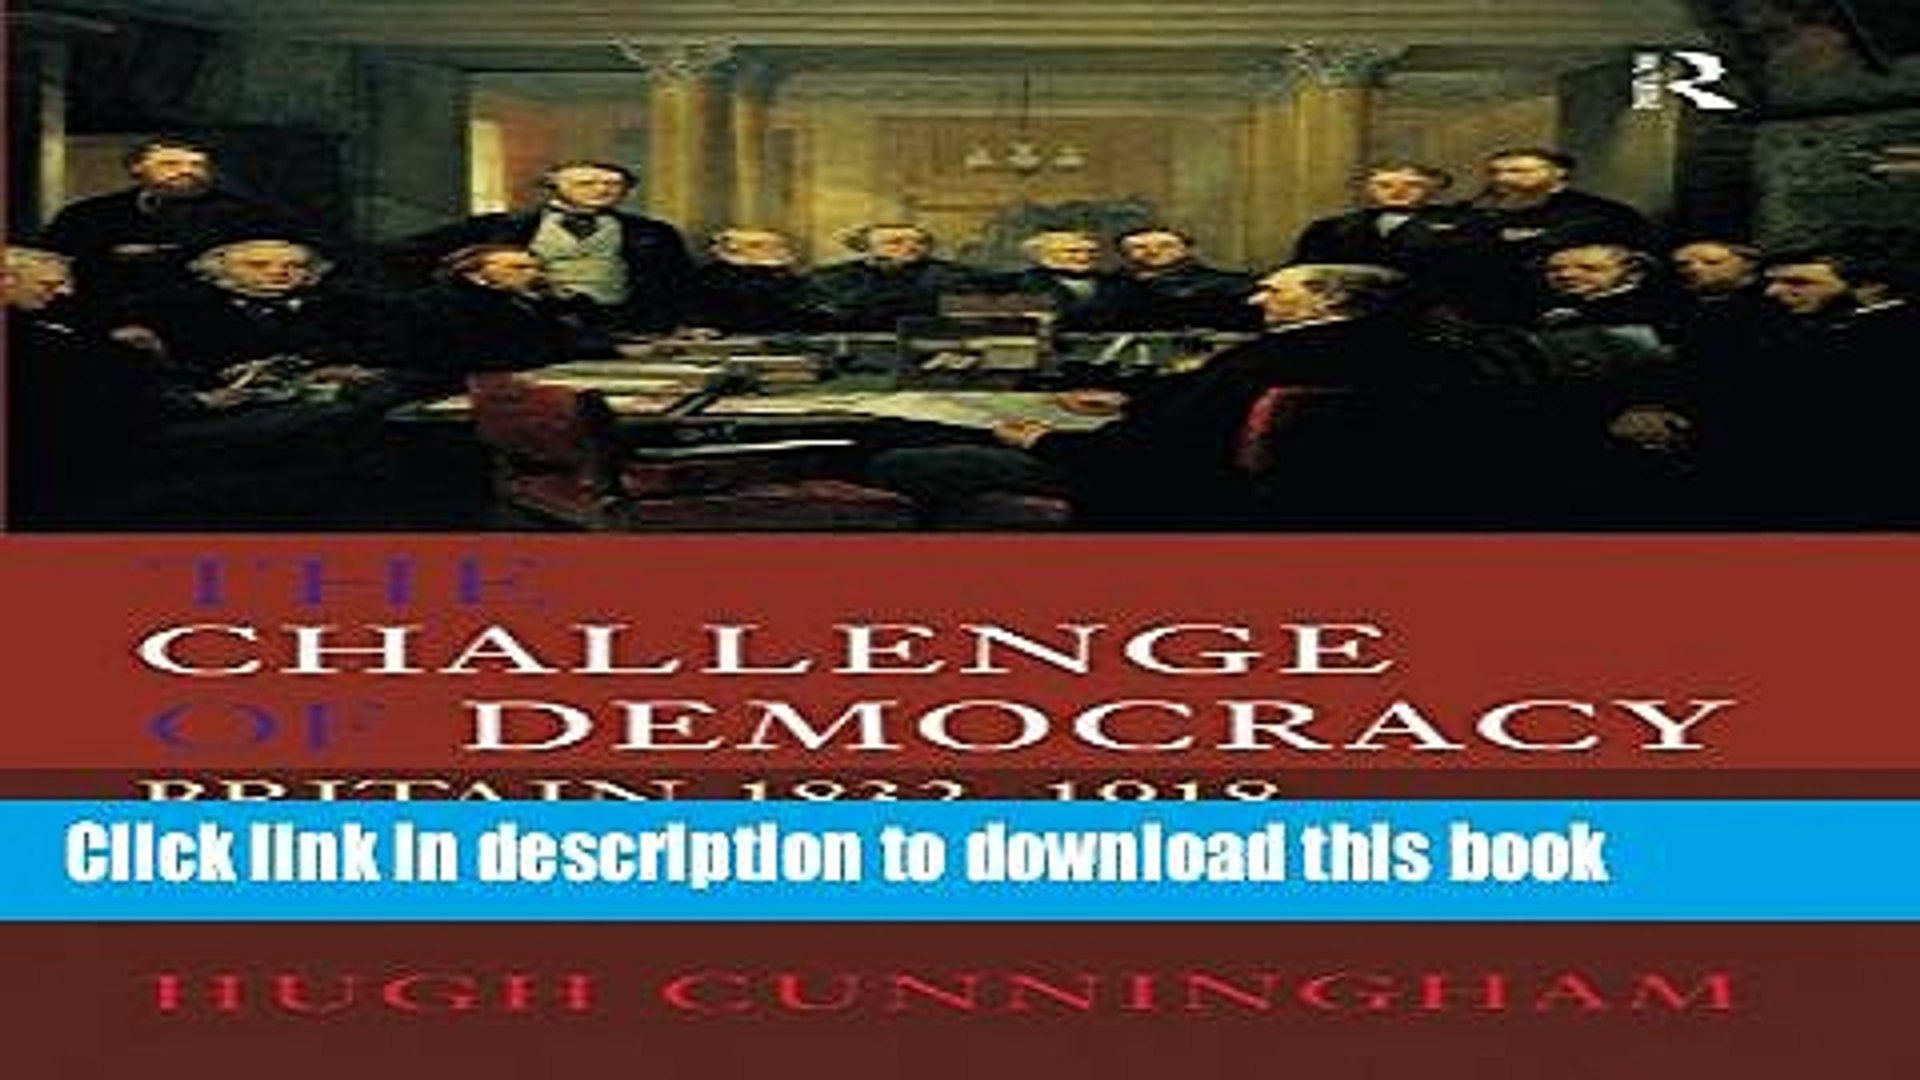 Download The Challenge of Democracy: Britain 1832-1918 (New History of Britain)  Ebook Free